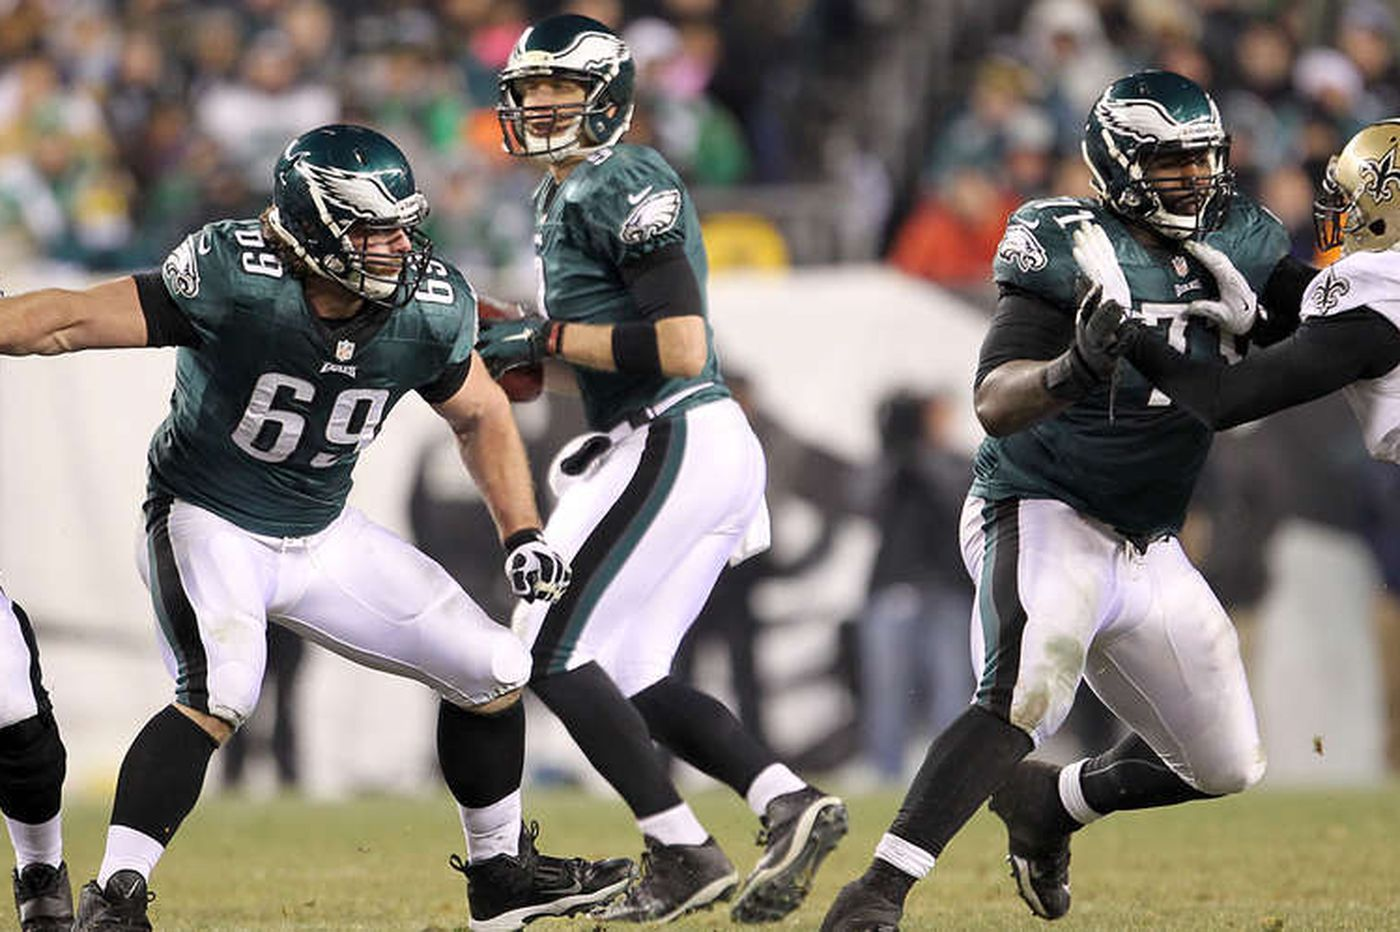 NFL playoffs betting: William Hill bookie says Eagles win over Saints would be 'horrible'